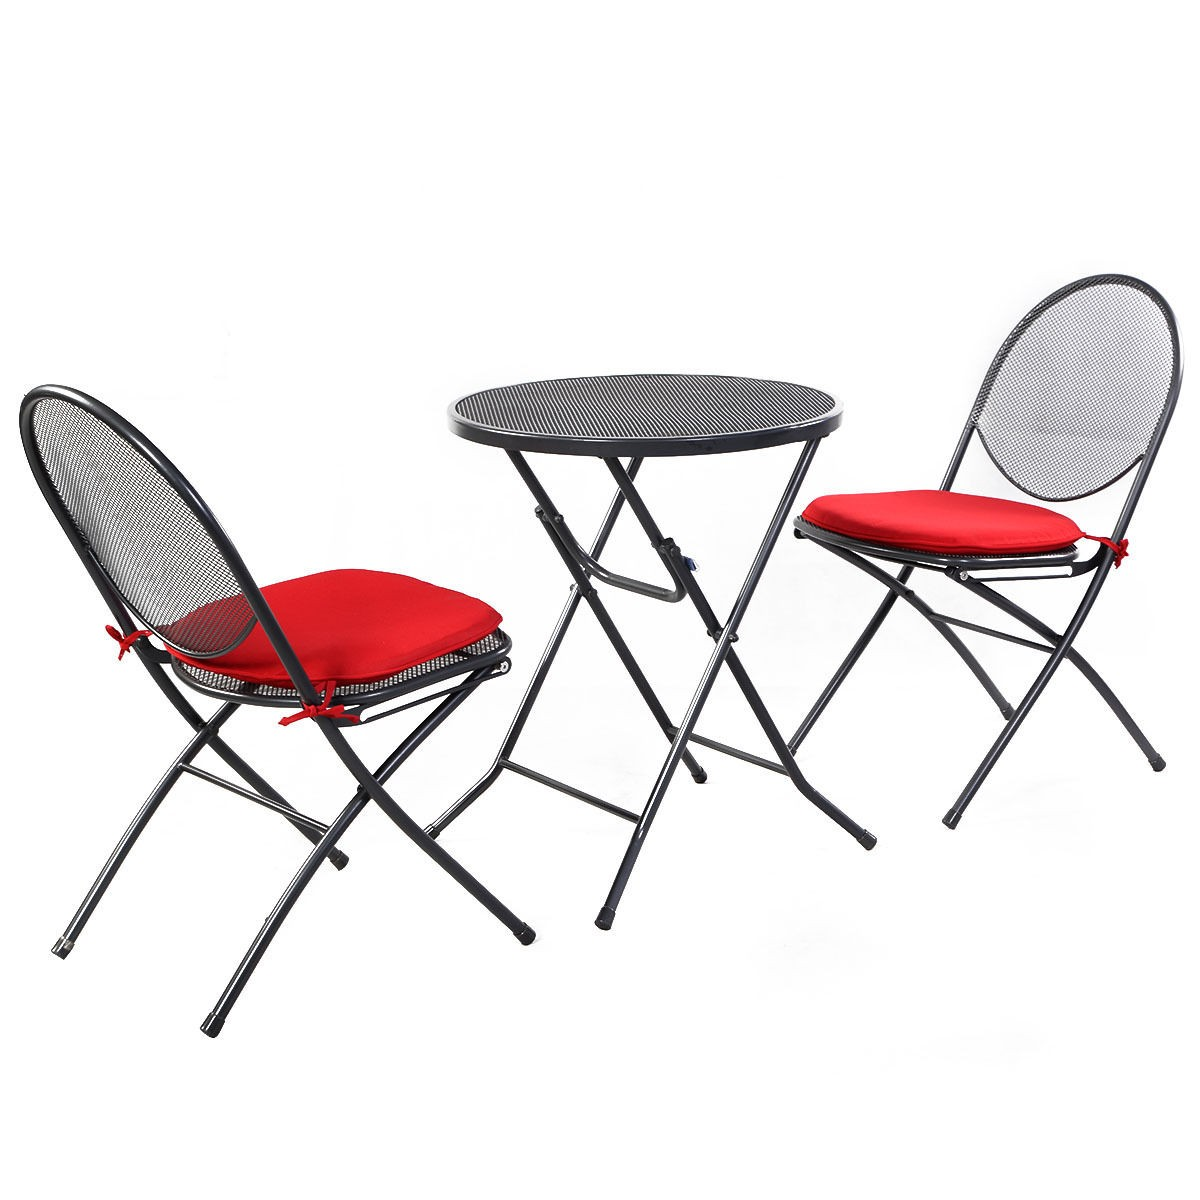 Mesh Patio Chairs 3 Pcs Folding Steel Mesh Outdoor Patio Table Chair Garden